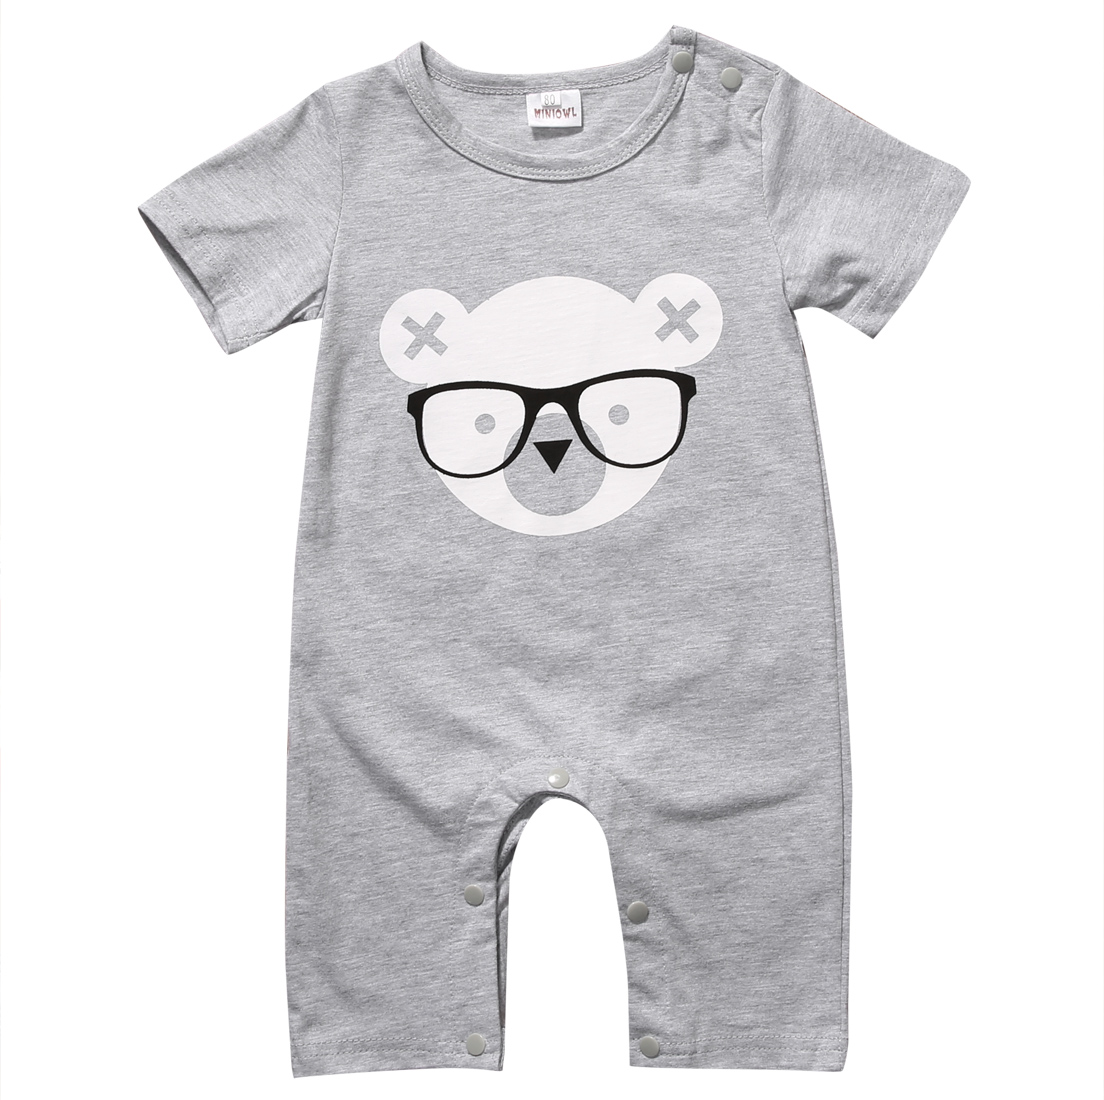 Newborn Infant Baby Boy Girl Bear Jumpsuit Rompers 2017 Summer Baby Clothes Baby Boys Rompers Girls Rompers Outfits Cotton summer 2017 navy baby boys rompers infant sailor suit jumpsuit roupas meninos body ropa bebe romper newborn baby boy clothes